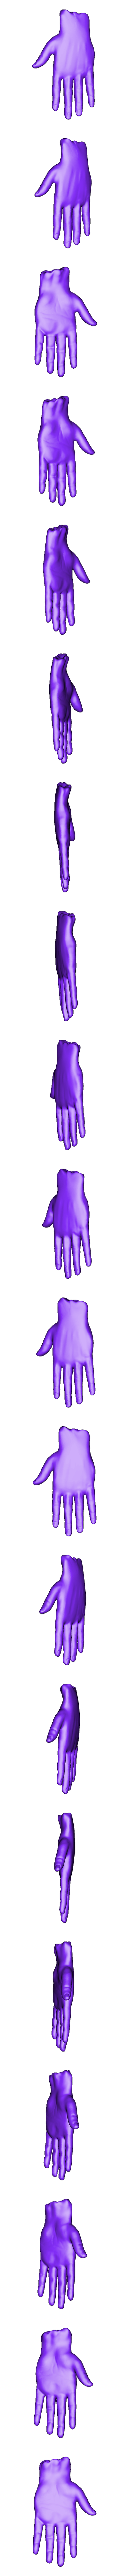 dismemberedhand.stl Download free STL file Dismembered Hand [Halloween] • 3D print object, Piggie